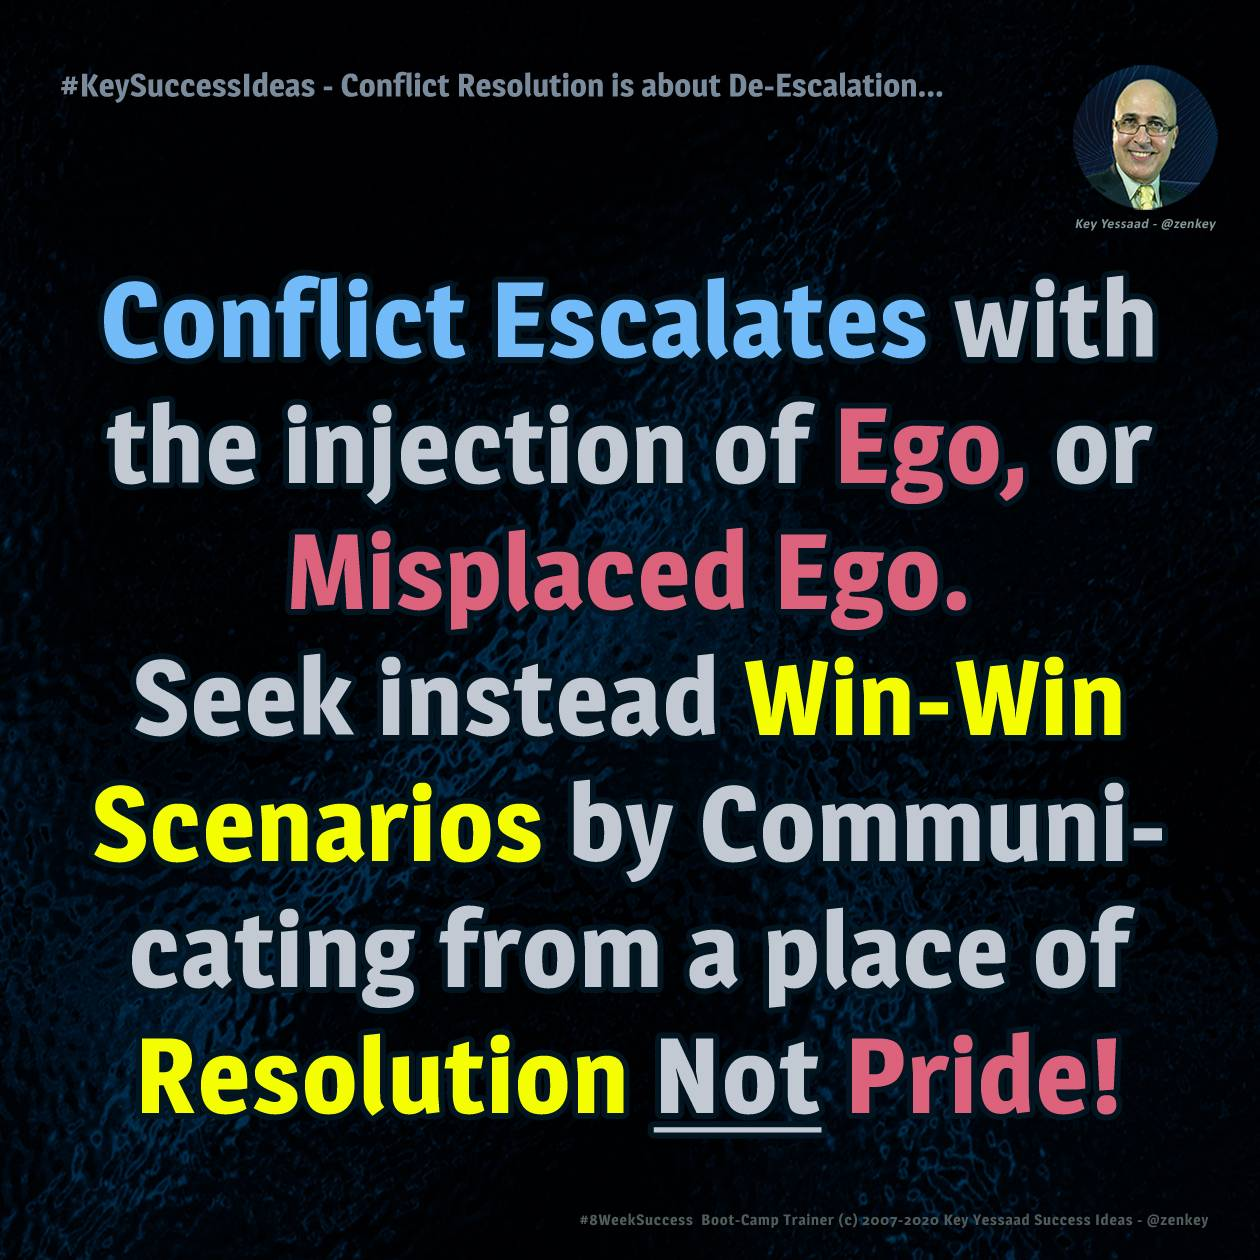 Conflict Resolution is about De-Escalation... - #KeySuccessIdeas